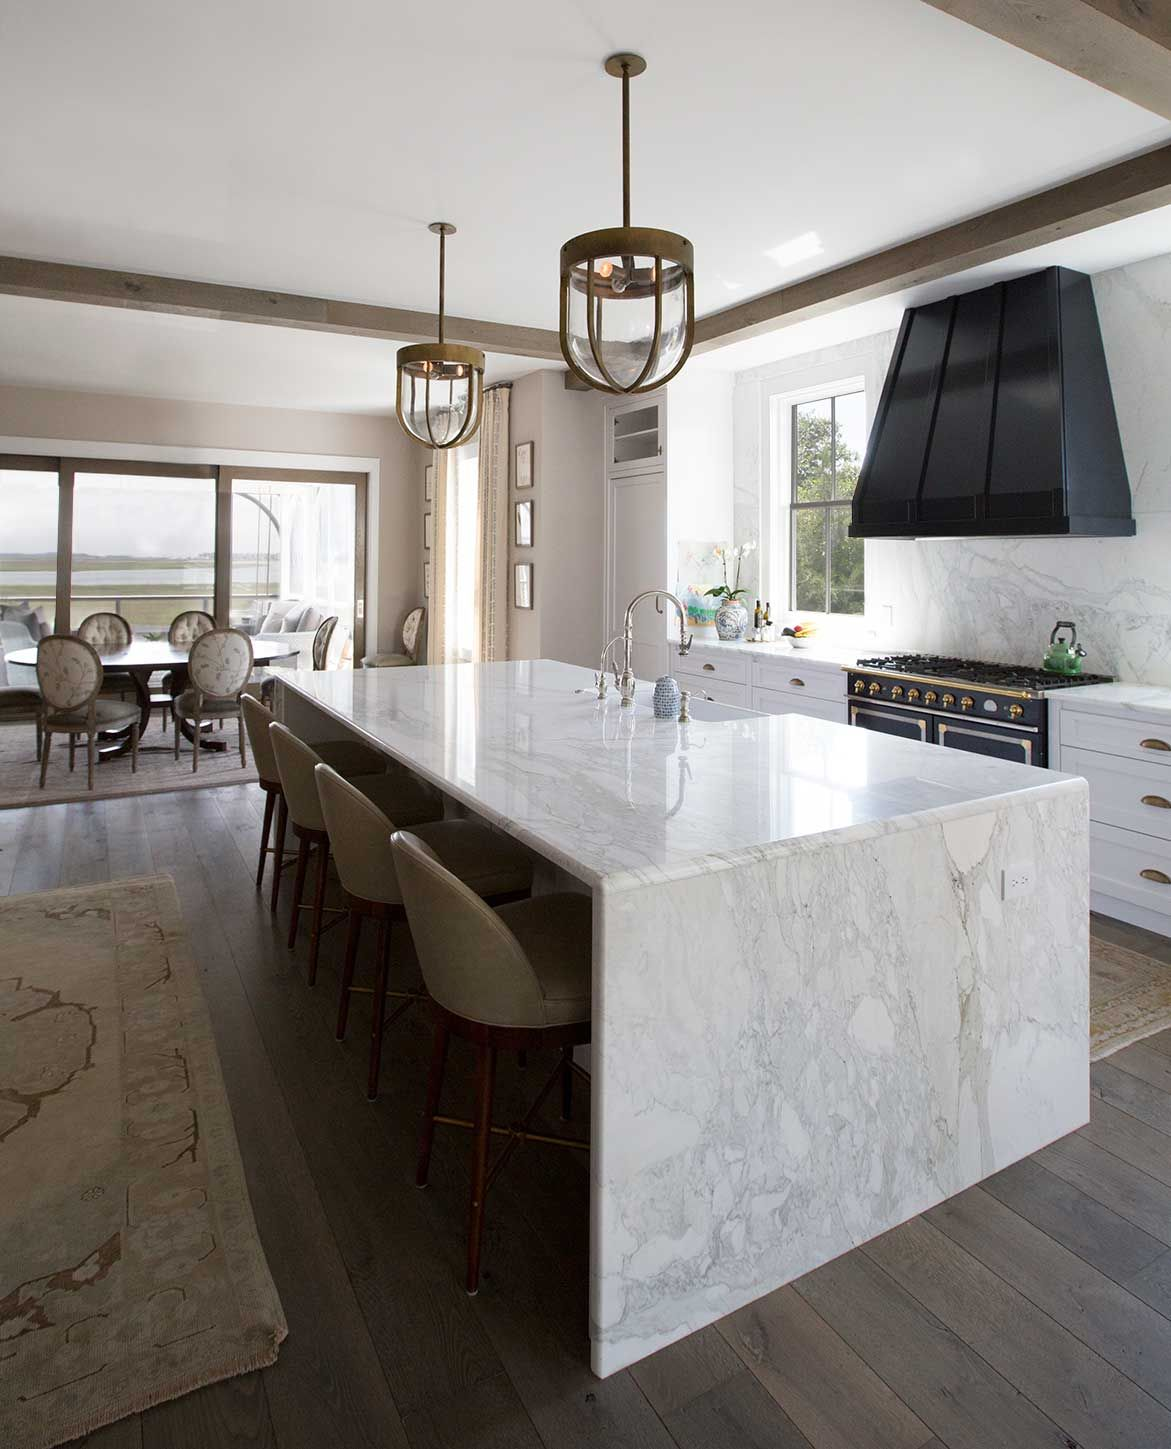 Marble Slab Island With Seating And Built In Sink Waterfall Countertop Kitchen Island Design Waterfall Island